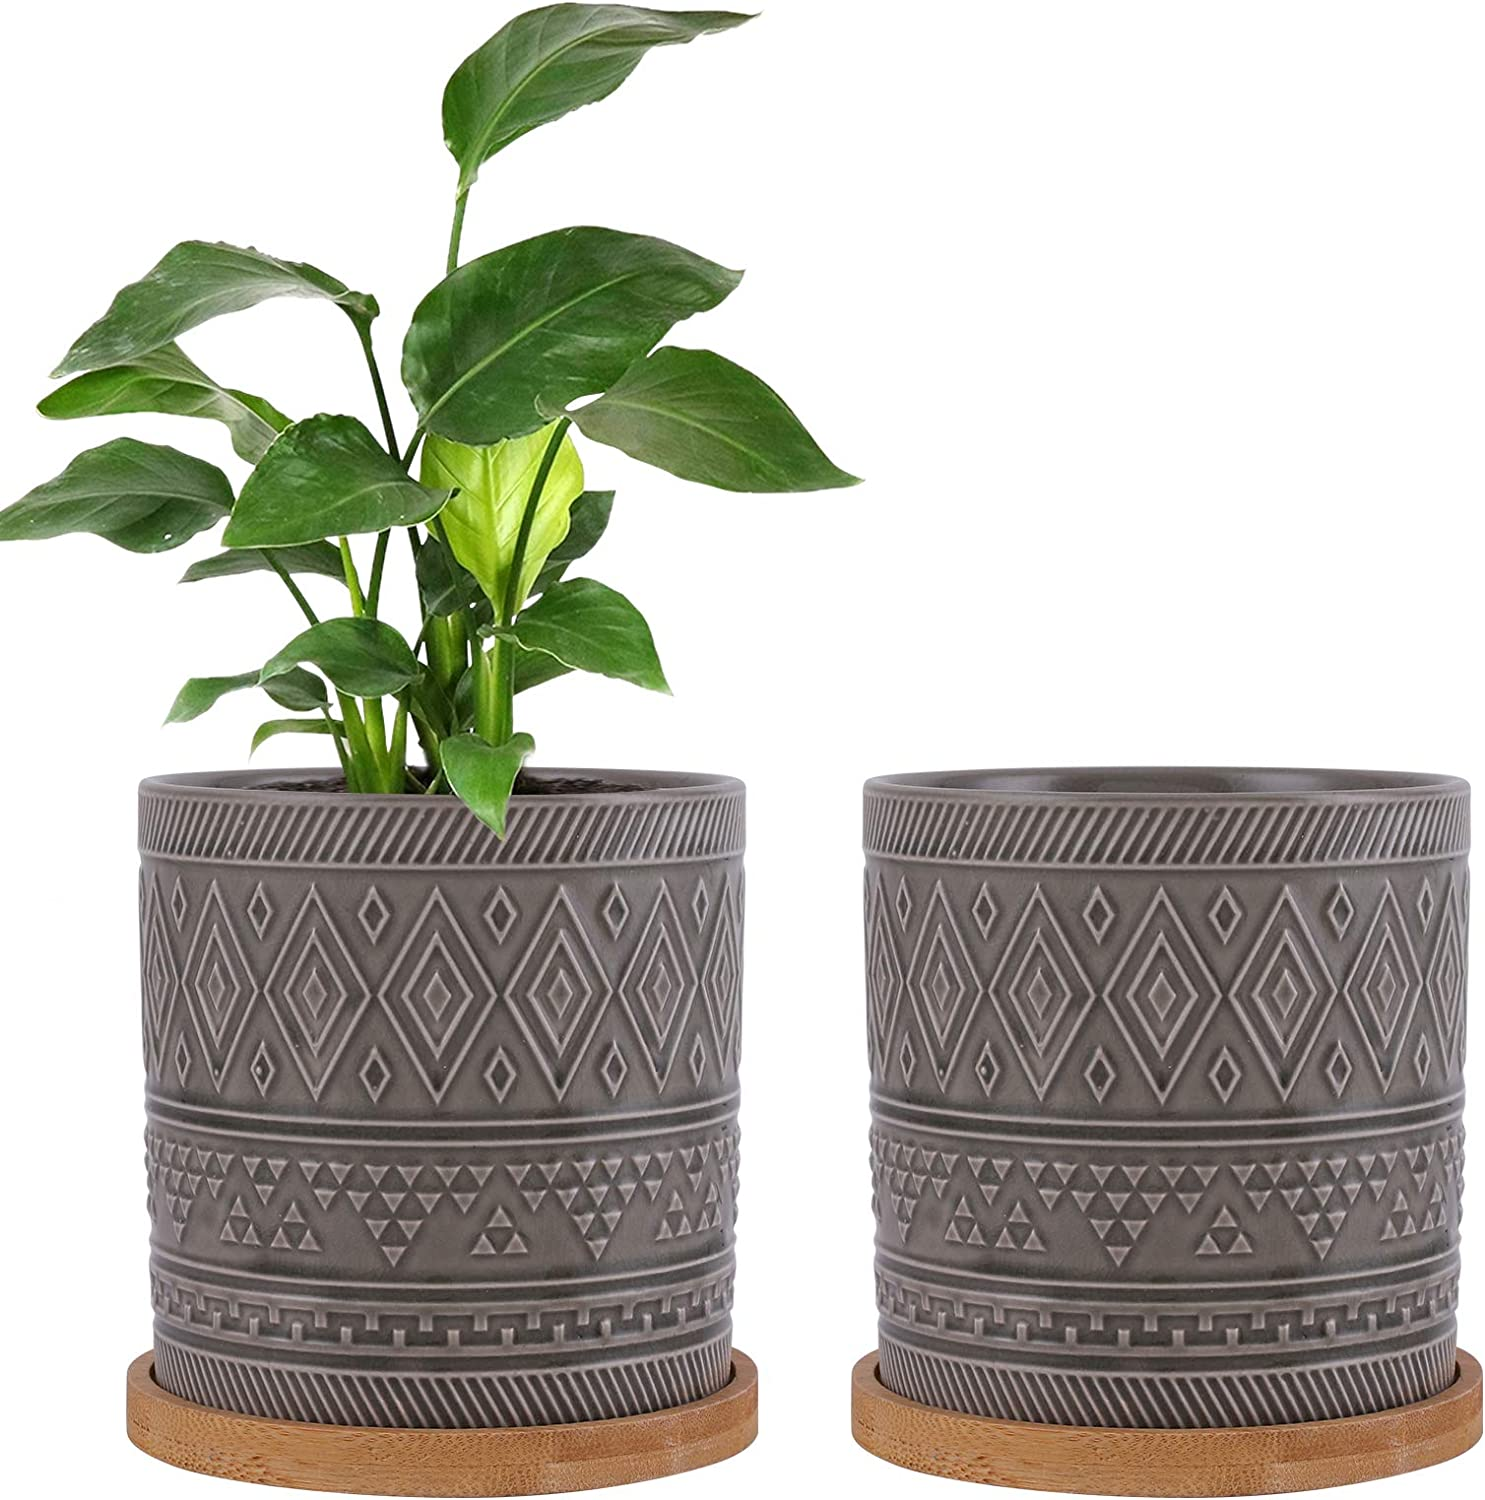 EPFamily 5 Inch Modern Ceramic Succulent Planters, Set of 2 Round Planter Pots with Drainage Hole, Outdoor Indoor Flower Pots with Bamboo Trays, Grey